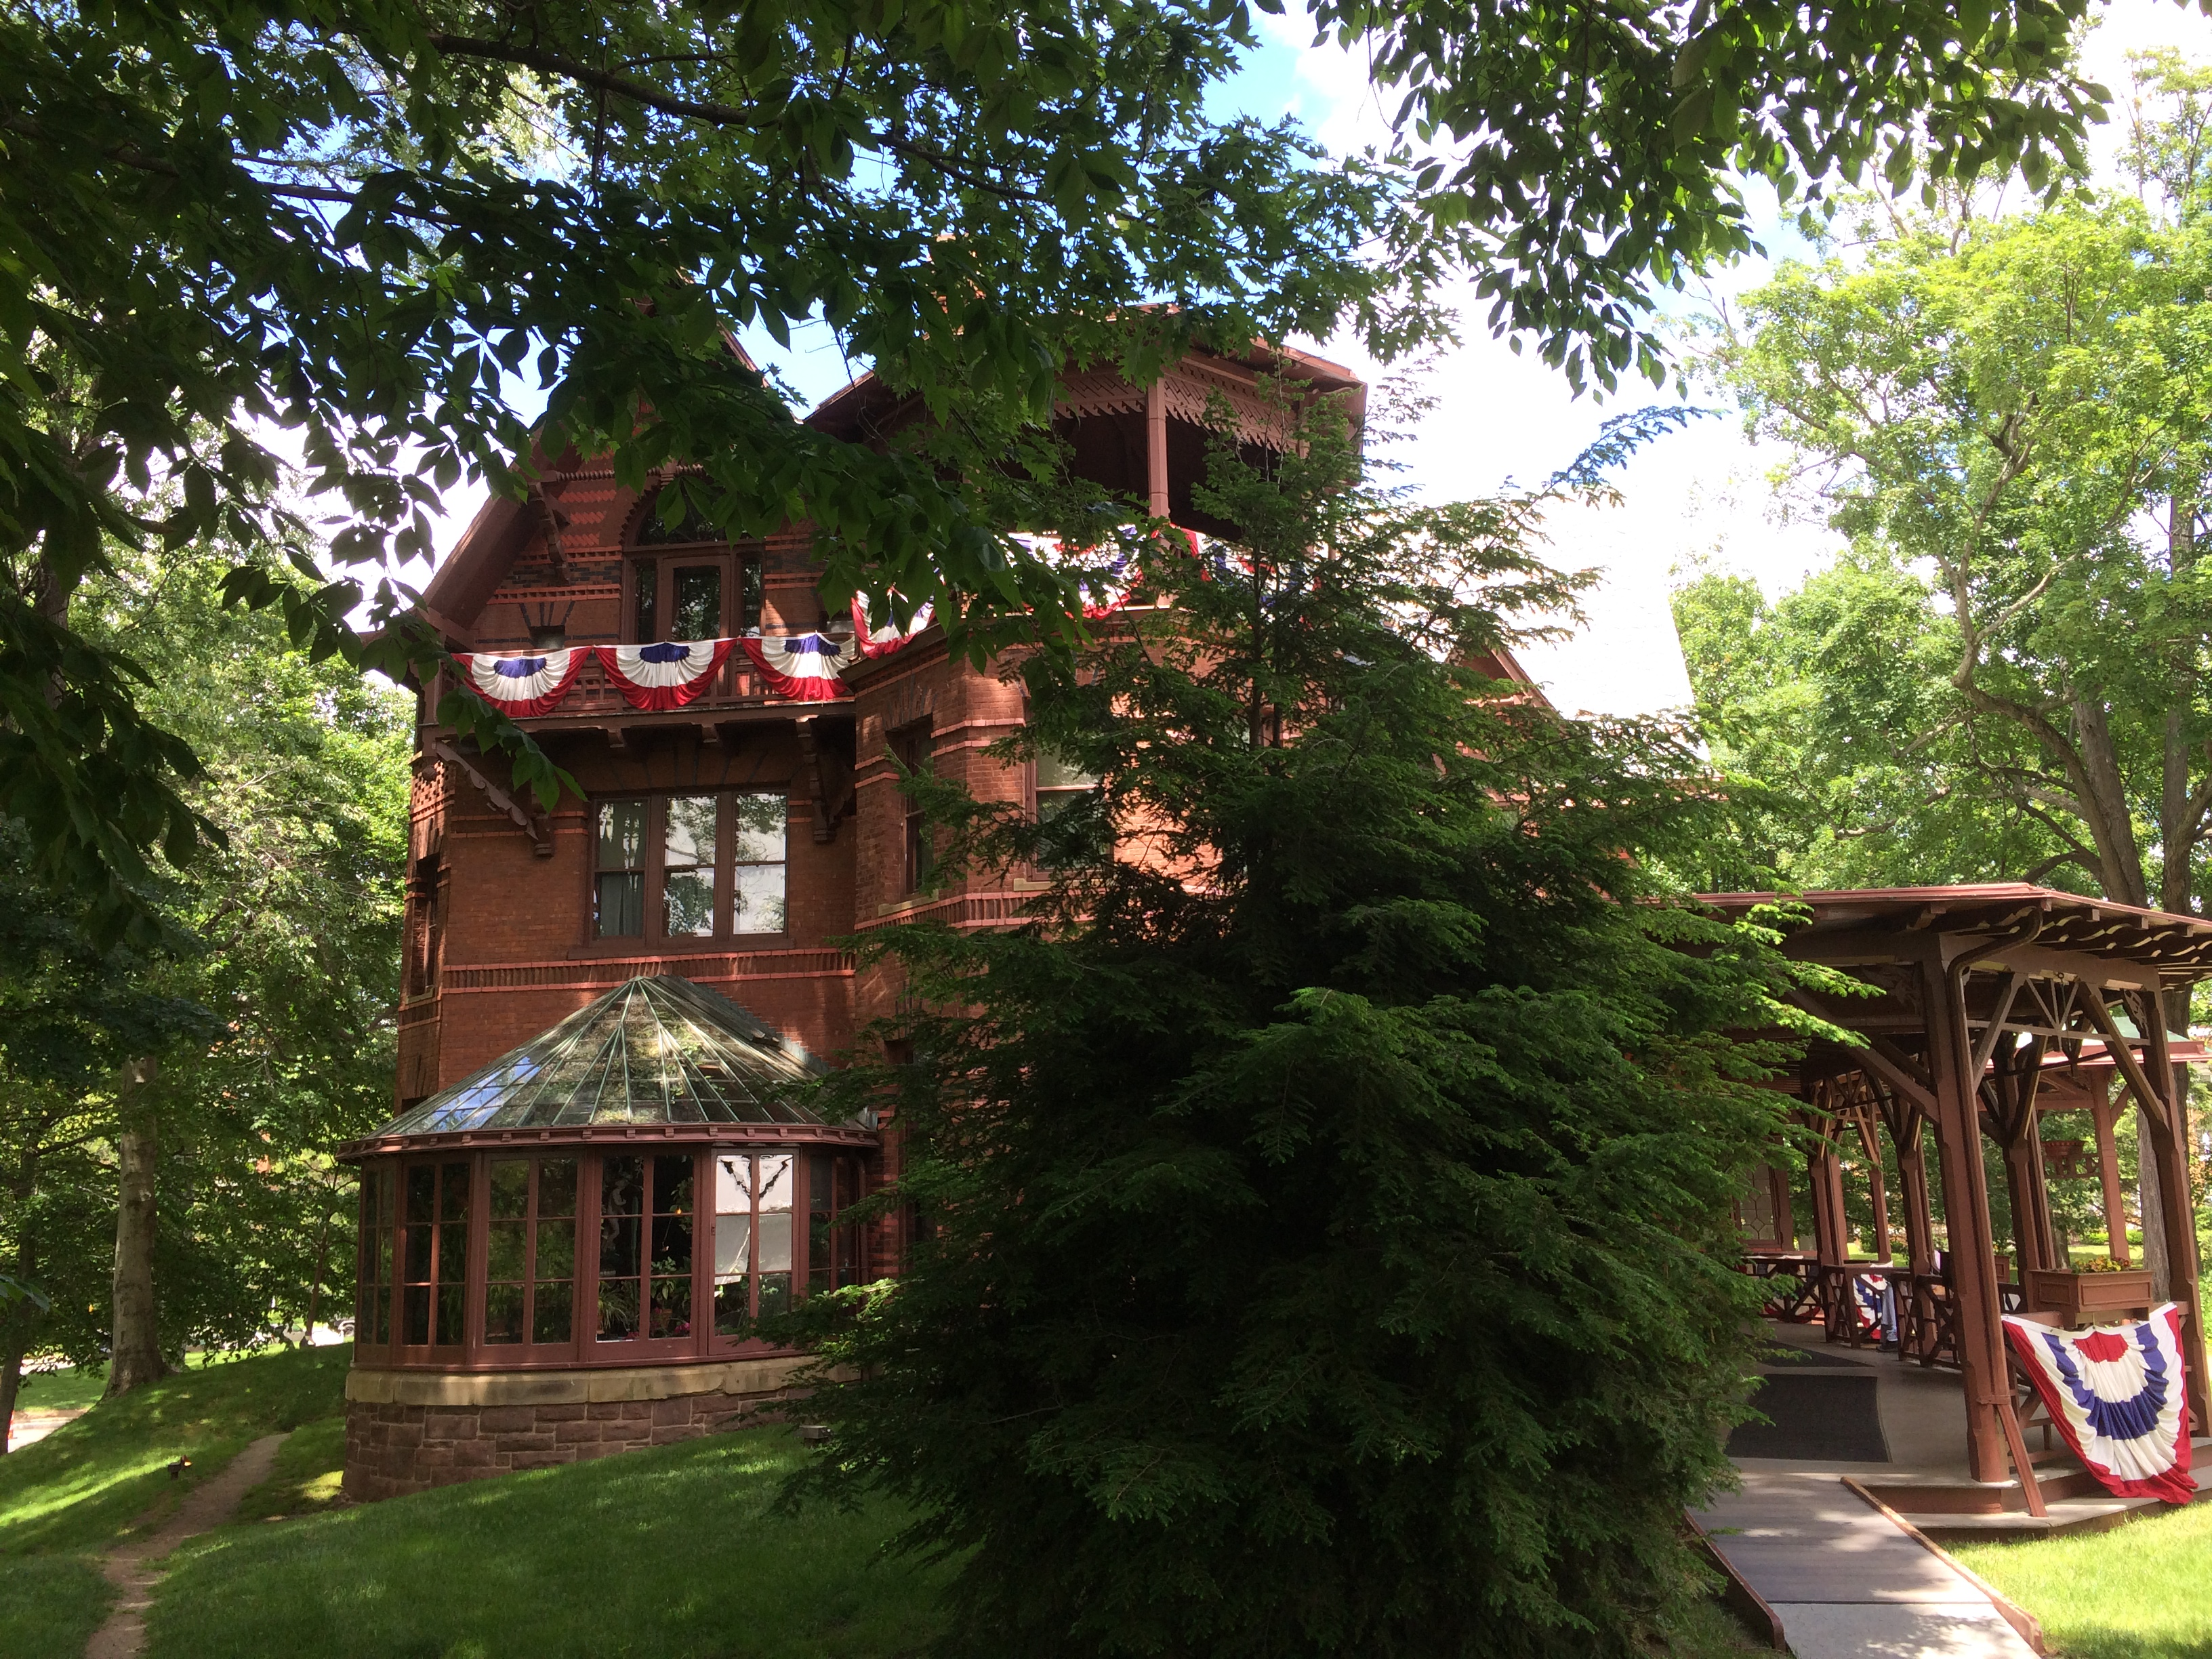 itself b vermont old business img is and elegance seasons four fashioned open destination amenities rose house country sharon in stone a blending springs with modern bed breakfast grand